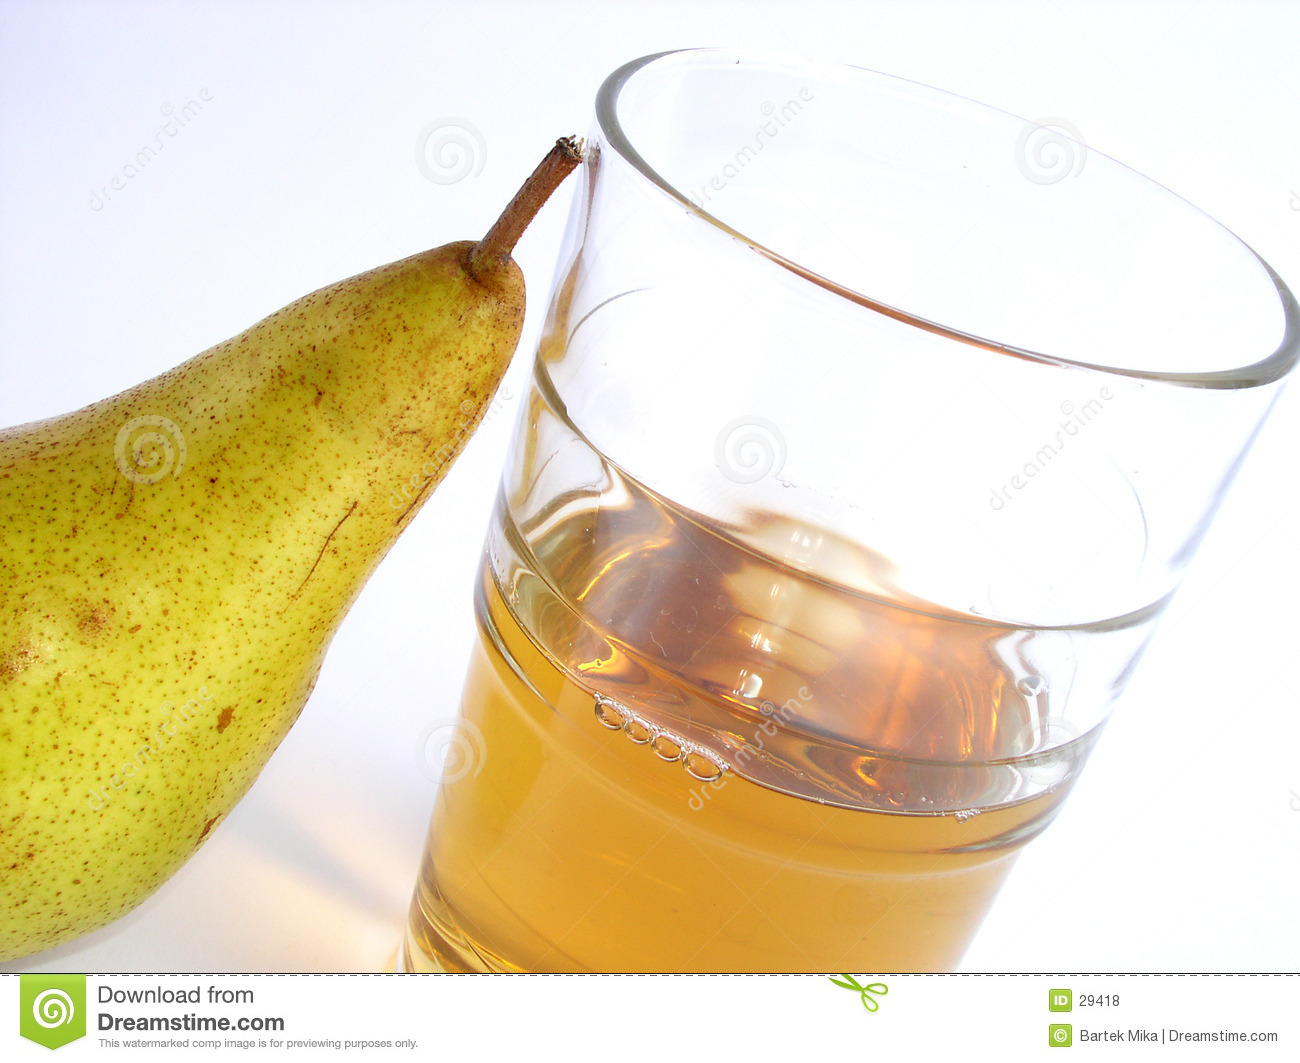 Juice and pear